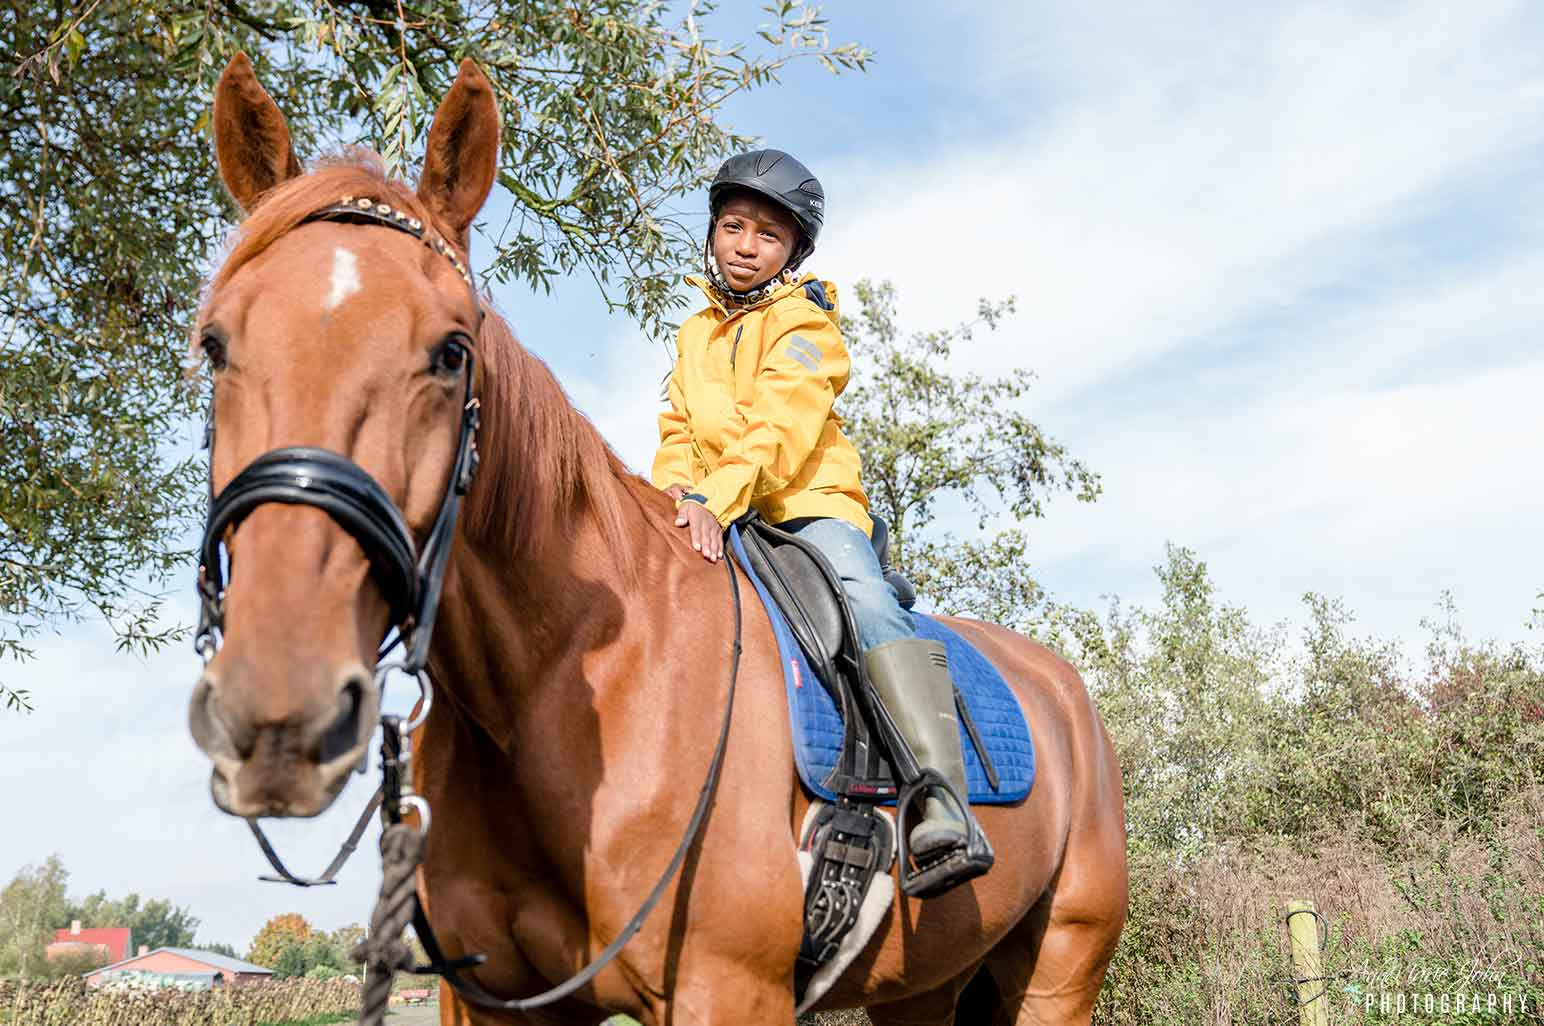 Why Horse-riding Is an Excellent Hobby for Anyone